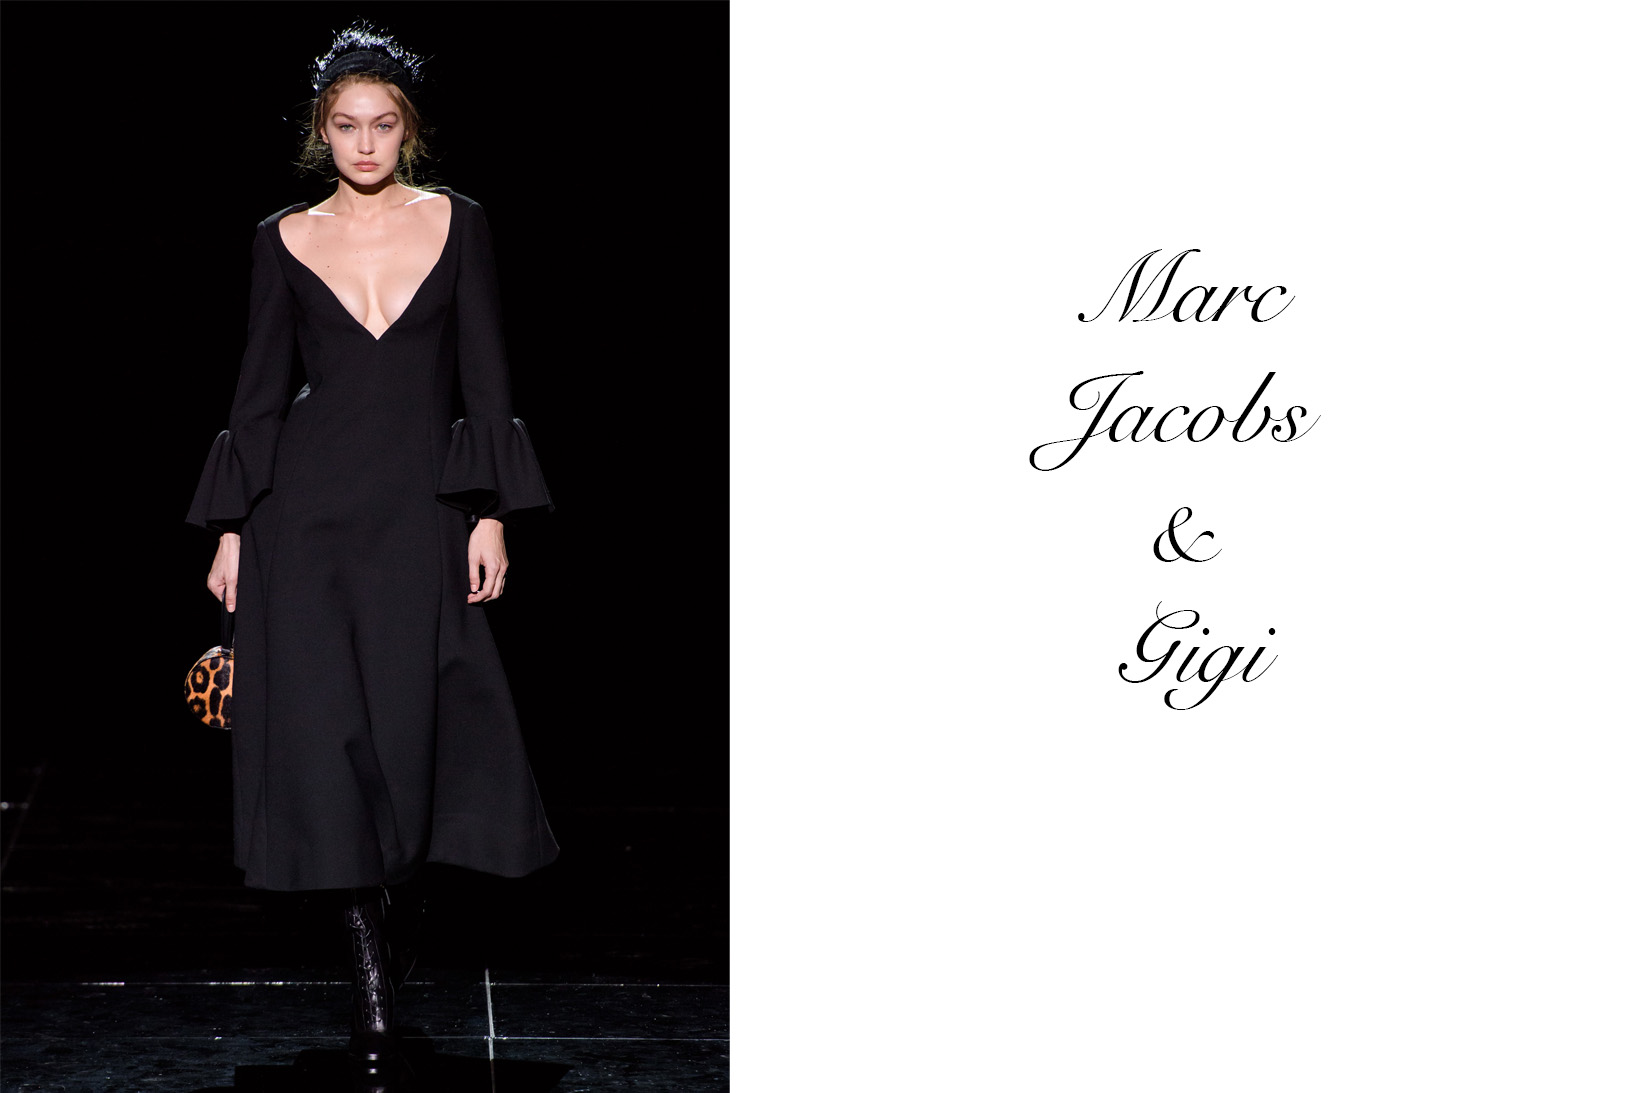 Gigi and Marc Jacobs